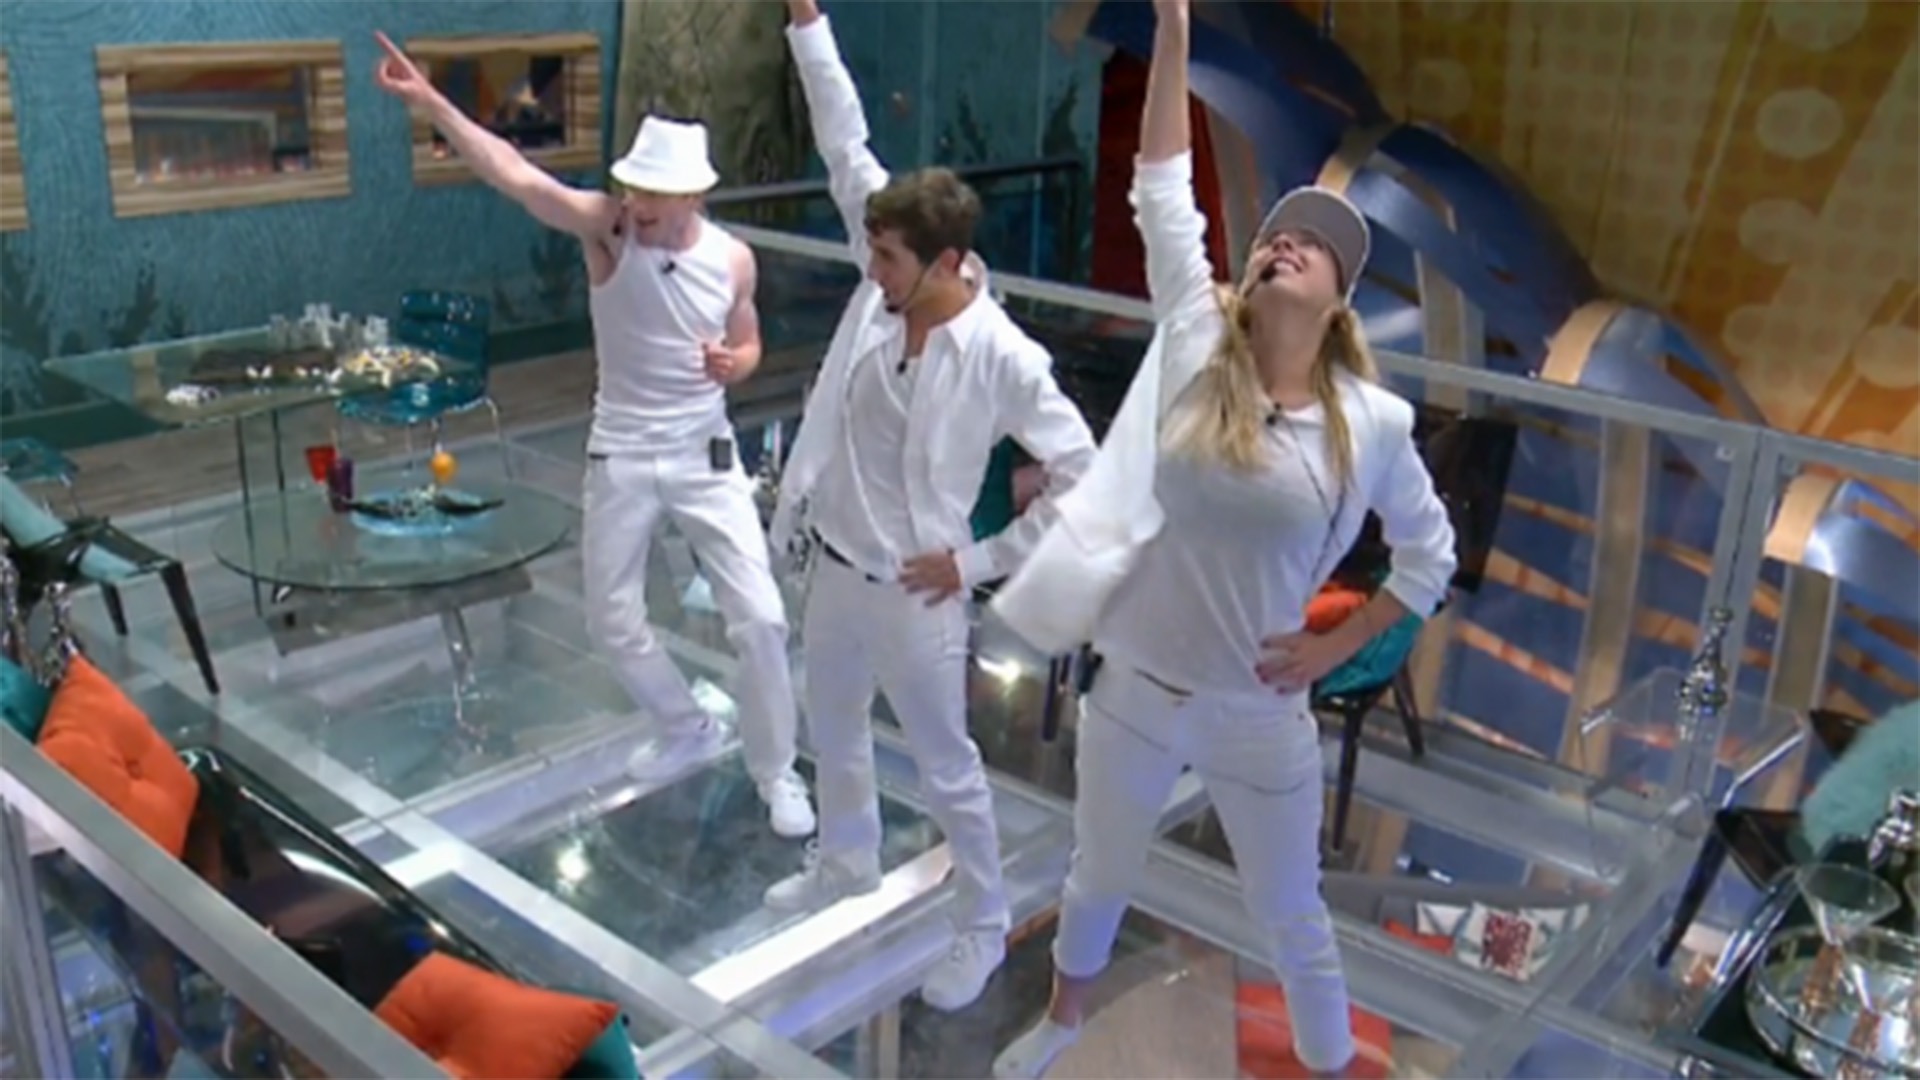 3. The Whackstreet Boys break out their first choreographed routine.